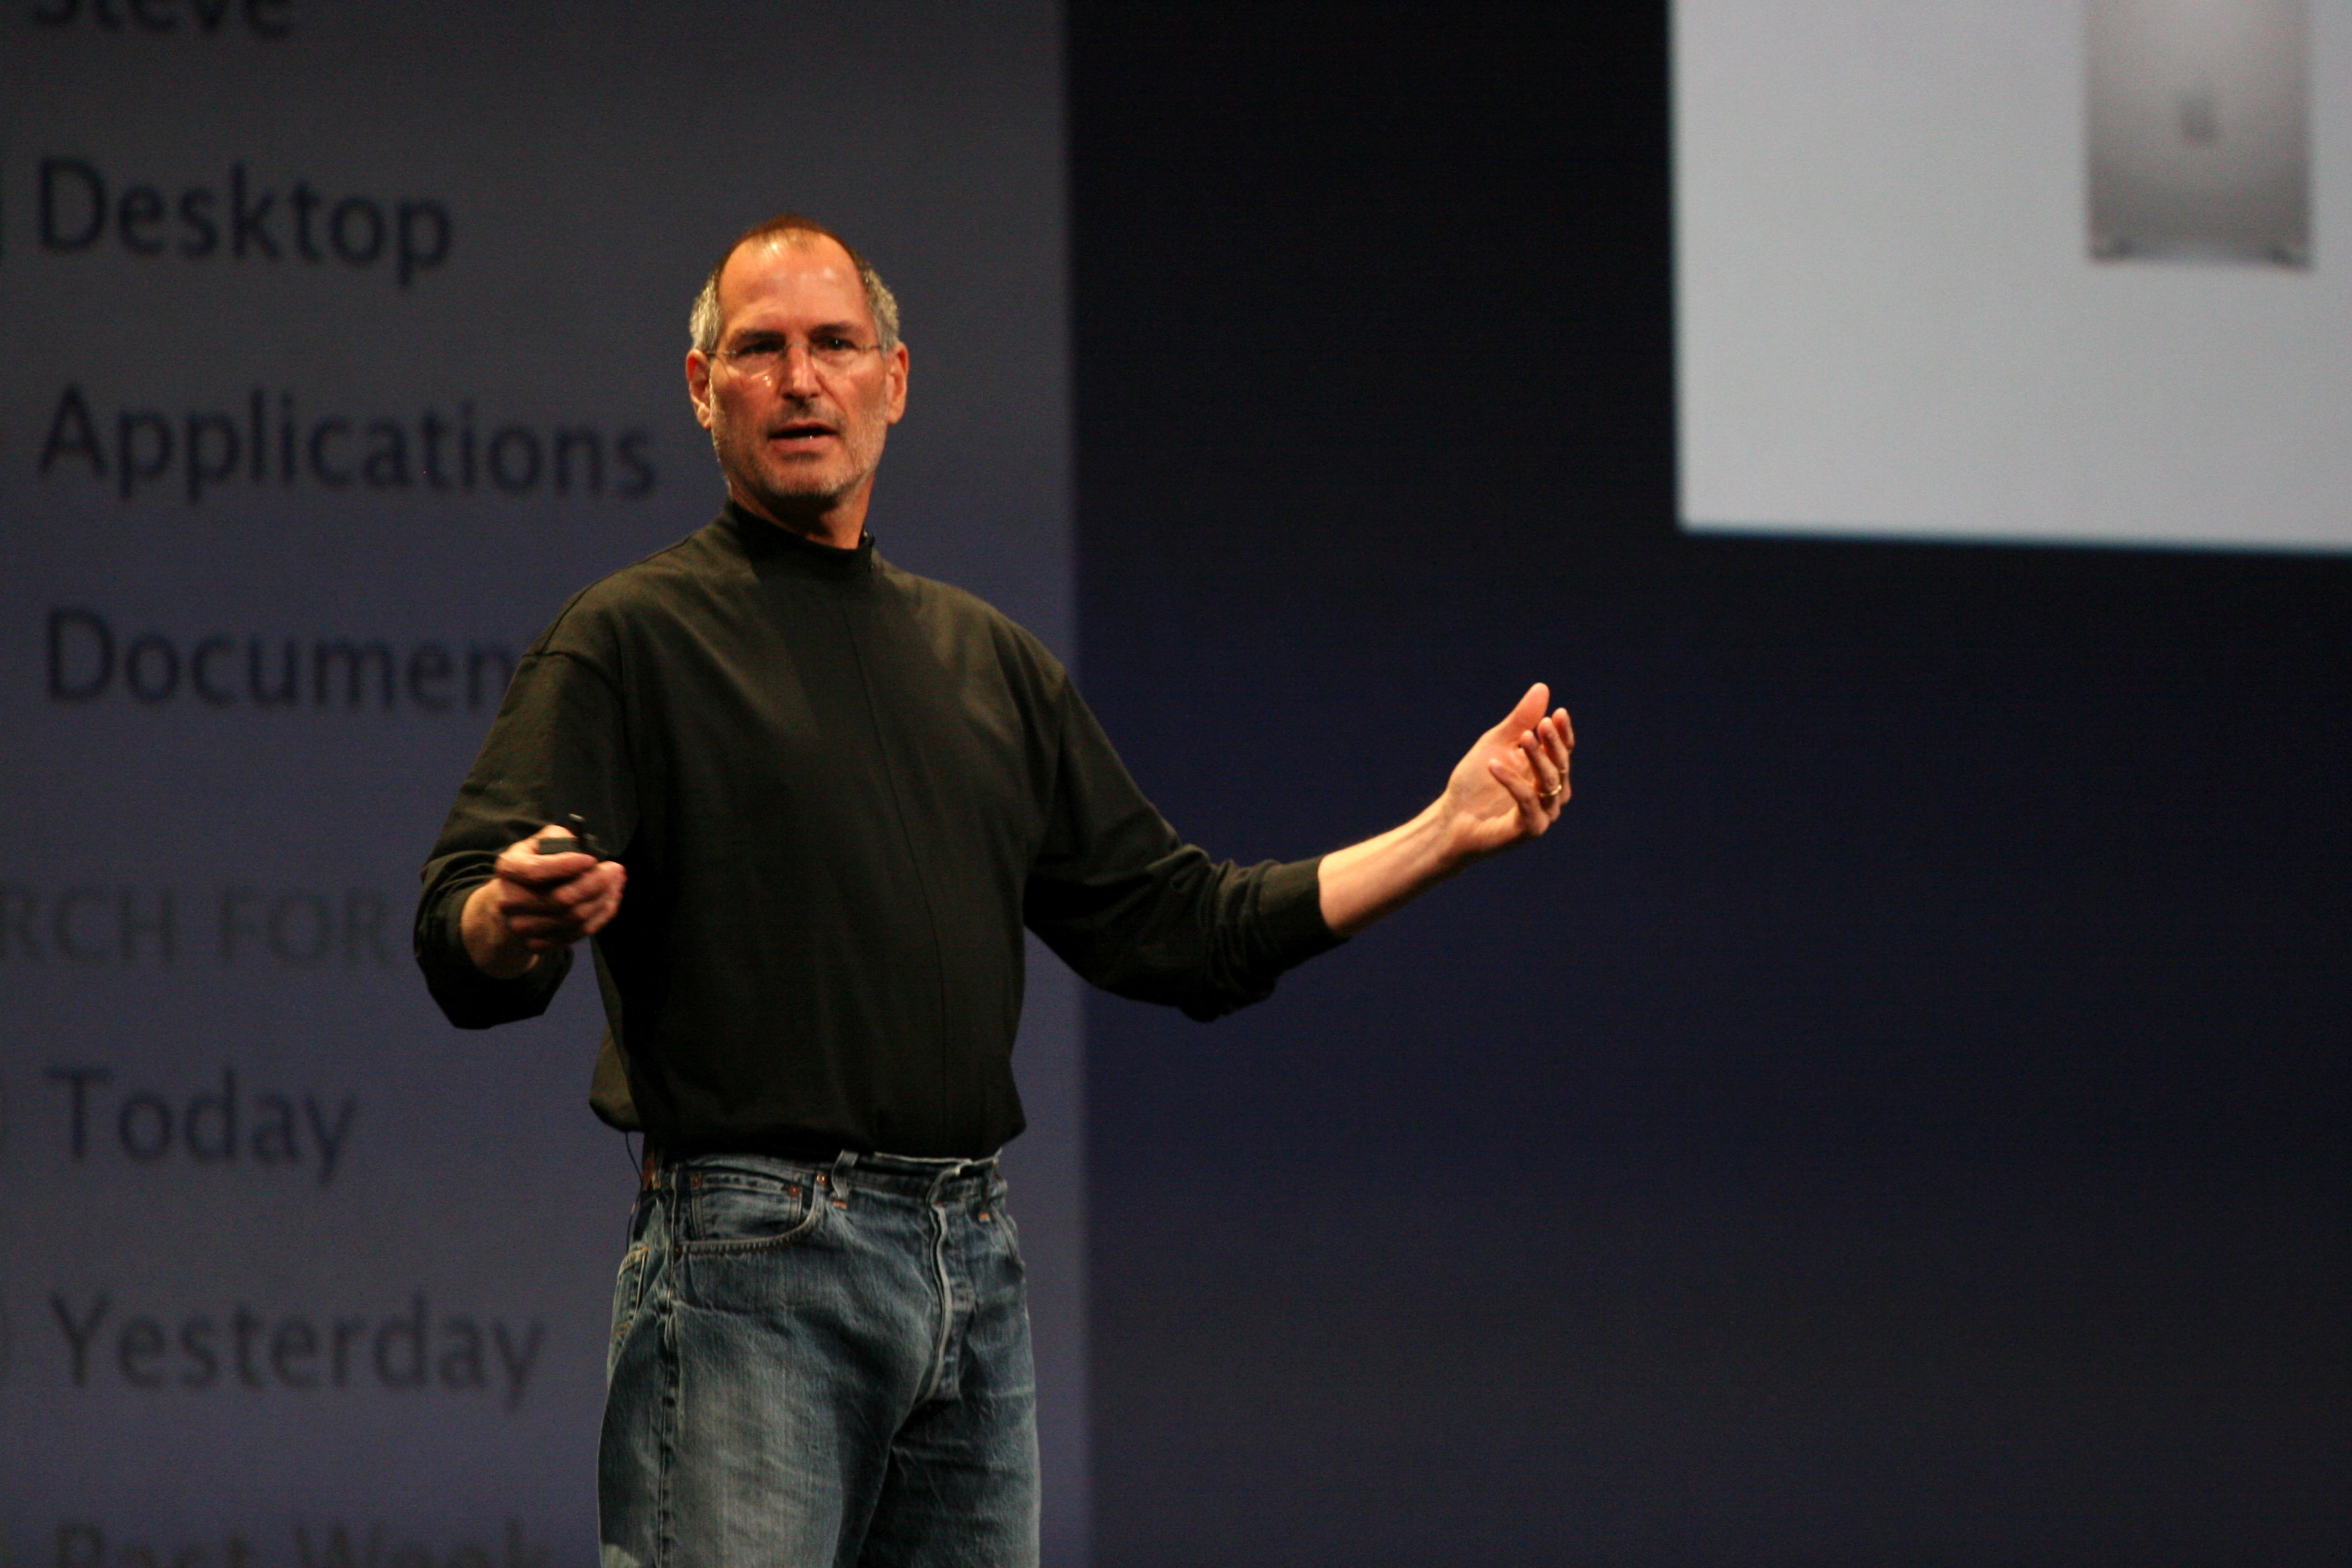 Steve Jobs' estate triumphs in battle over SteveJobs.com